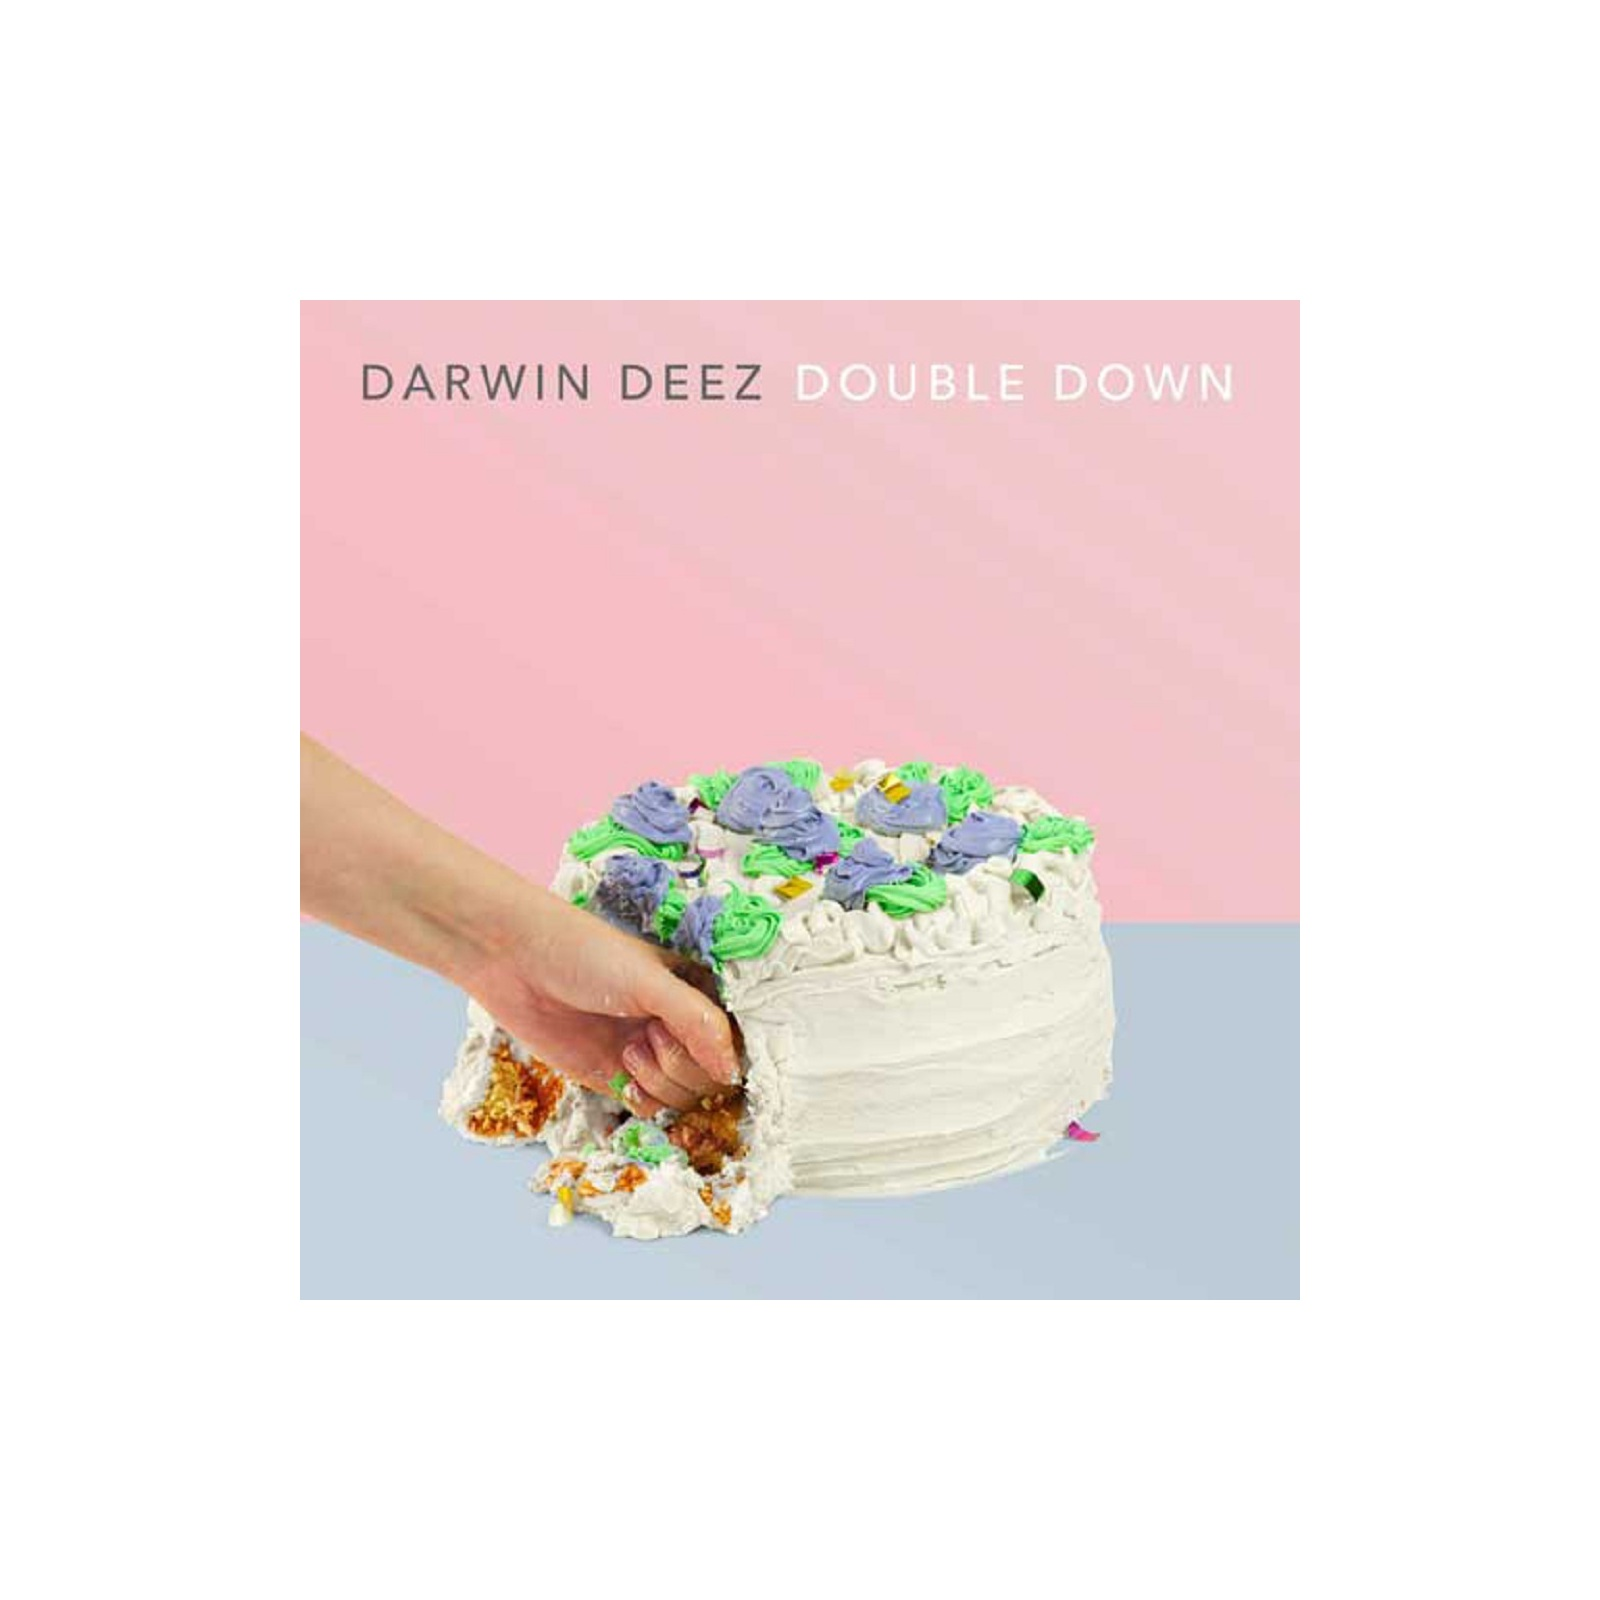 DOUBLE DOWN (LIMITED EDITION COLOURED 180GR VINYL) - DARWIN DEEZ